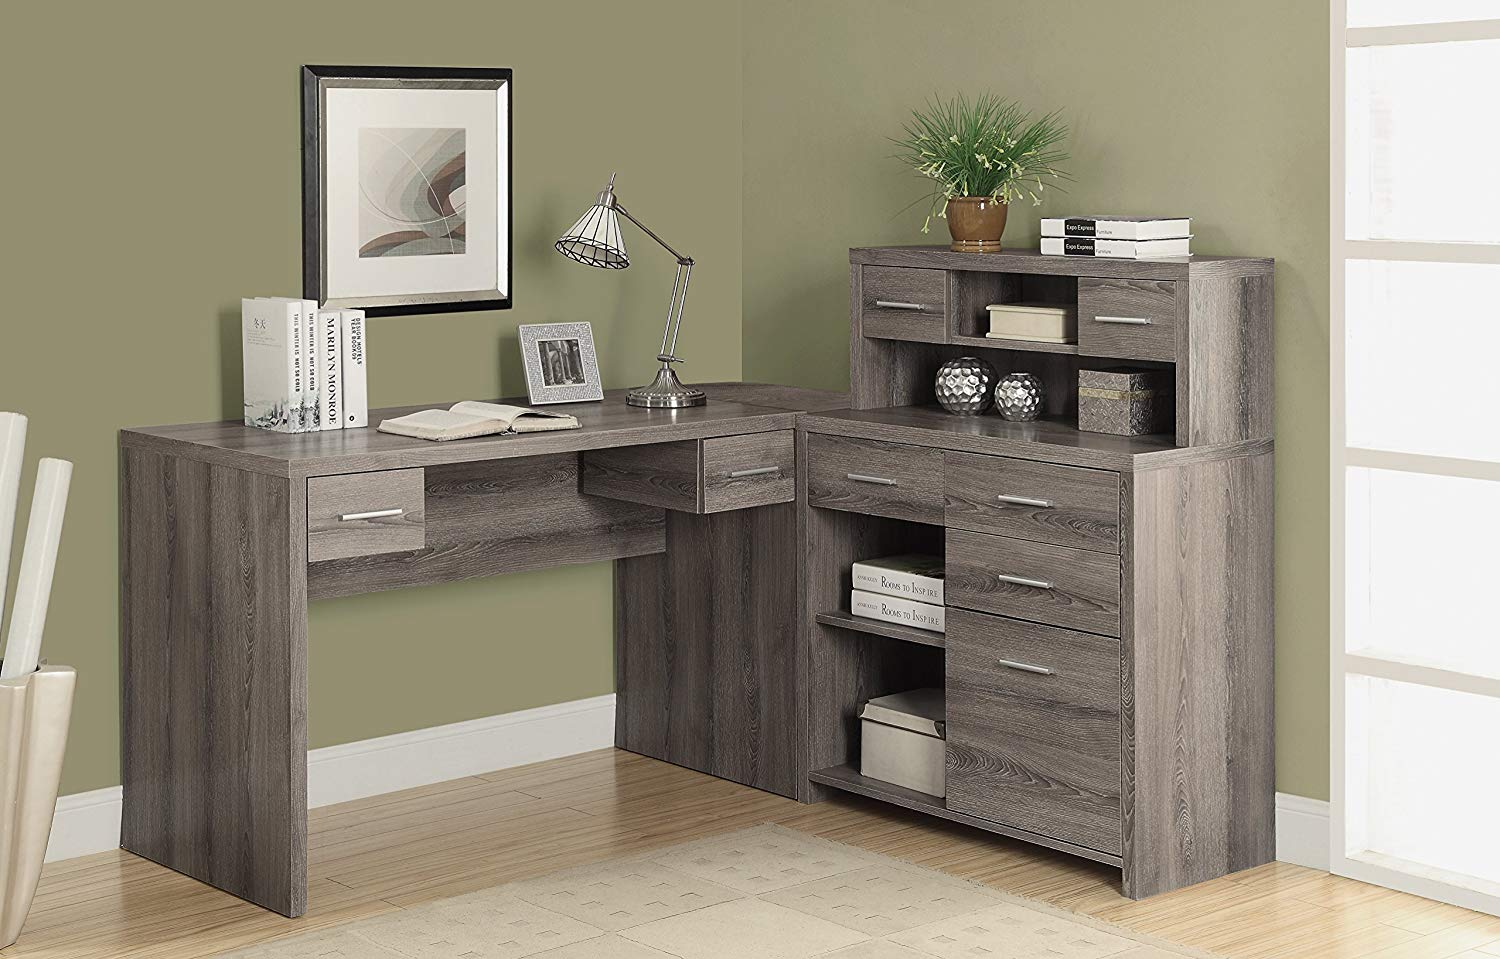 amazon.com: monarch reclaimed-look l shaped home office desk, dark taupe: ARZDOGN